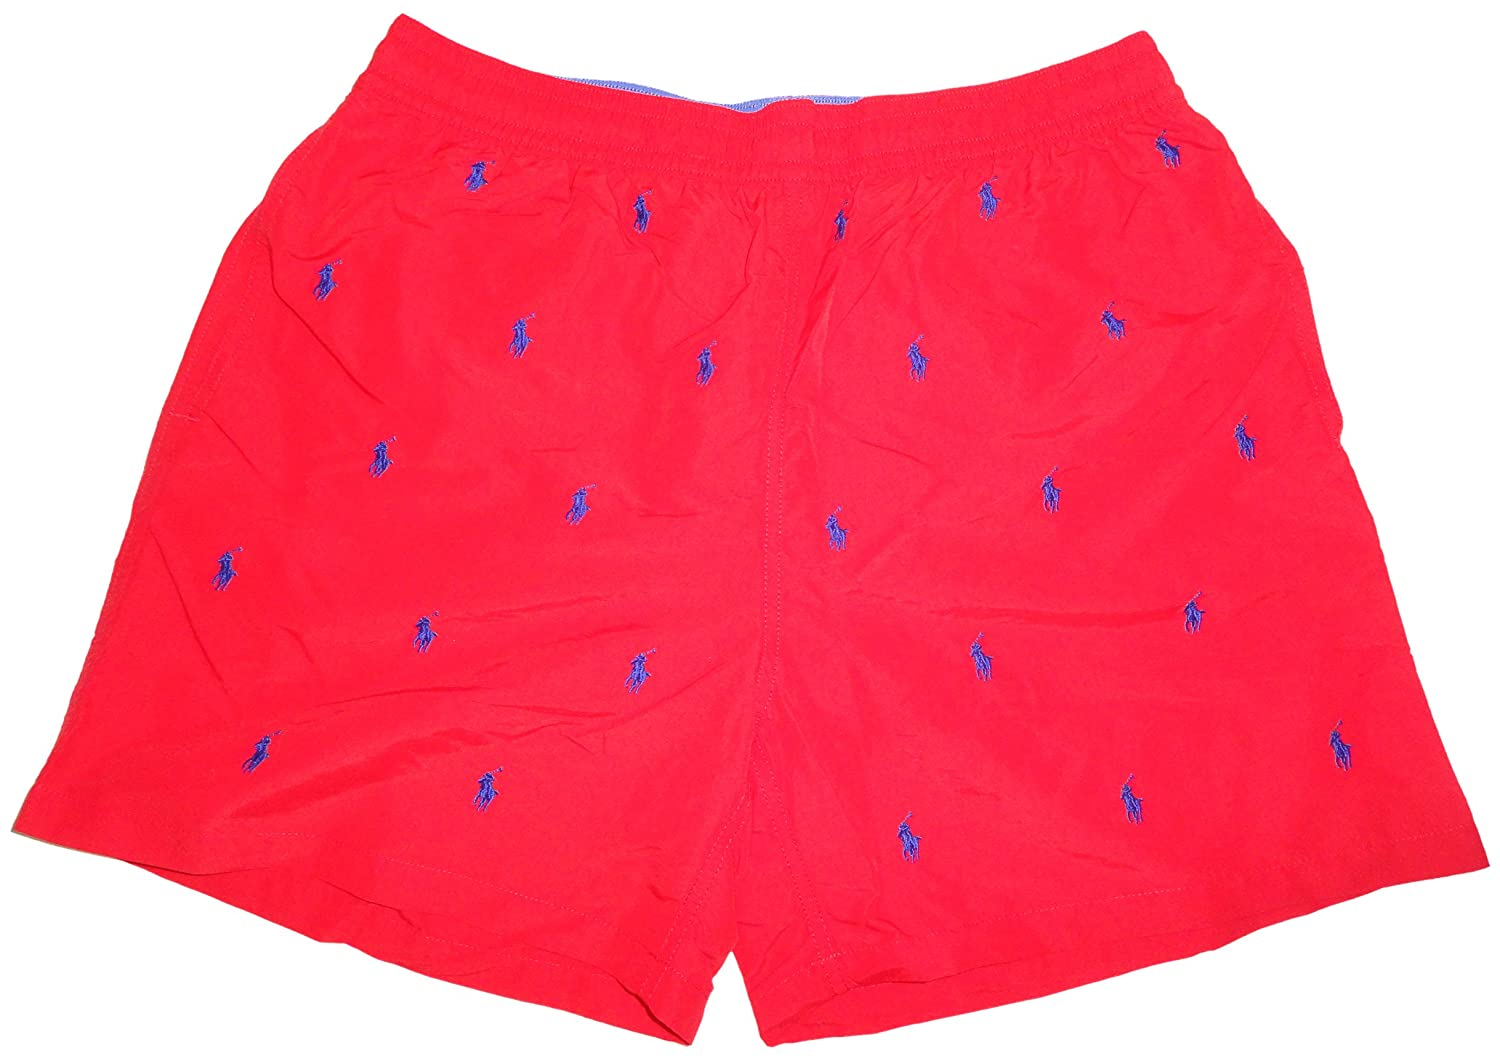 Polo Ralph Lauren Mens All Over Pony Swim Trunks Red with Blue Ponys  (Small) | Amazon.com